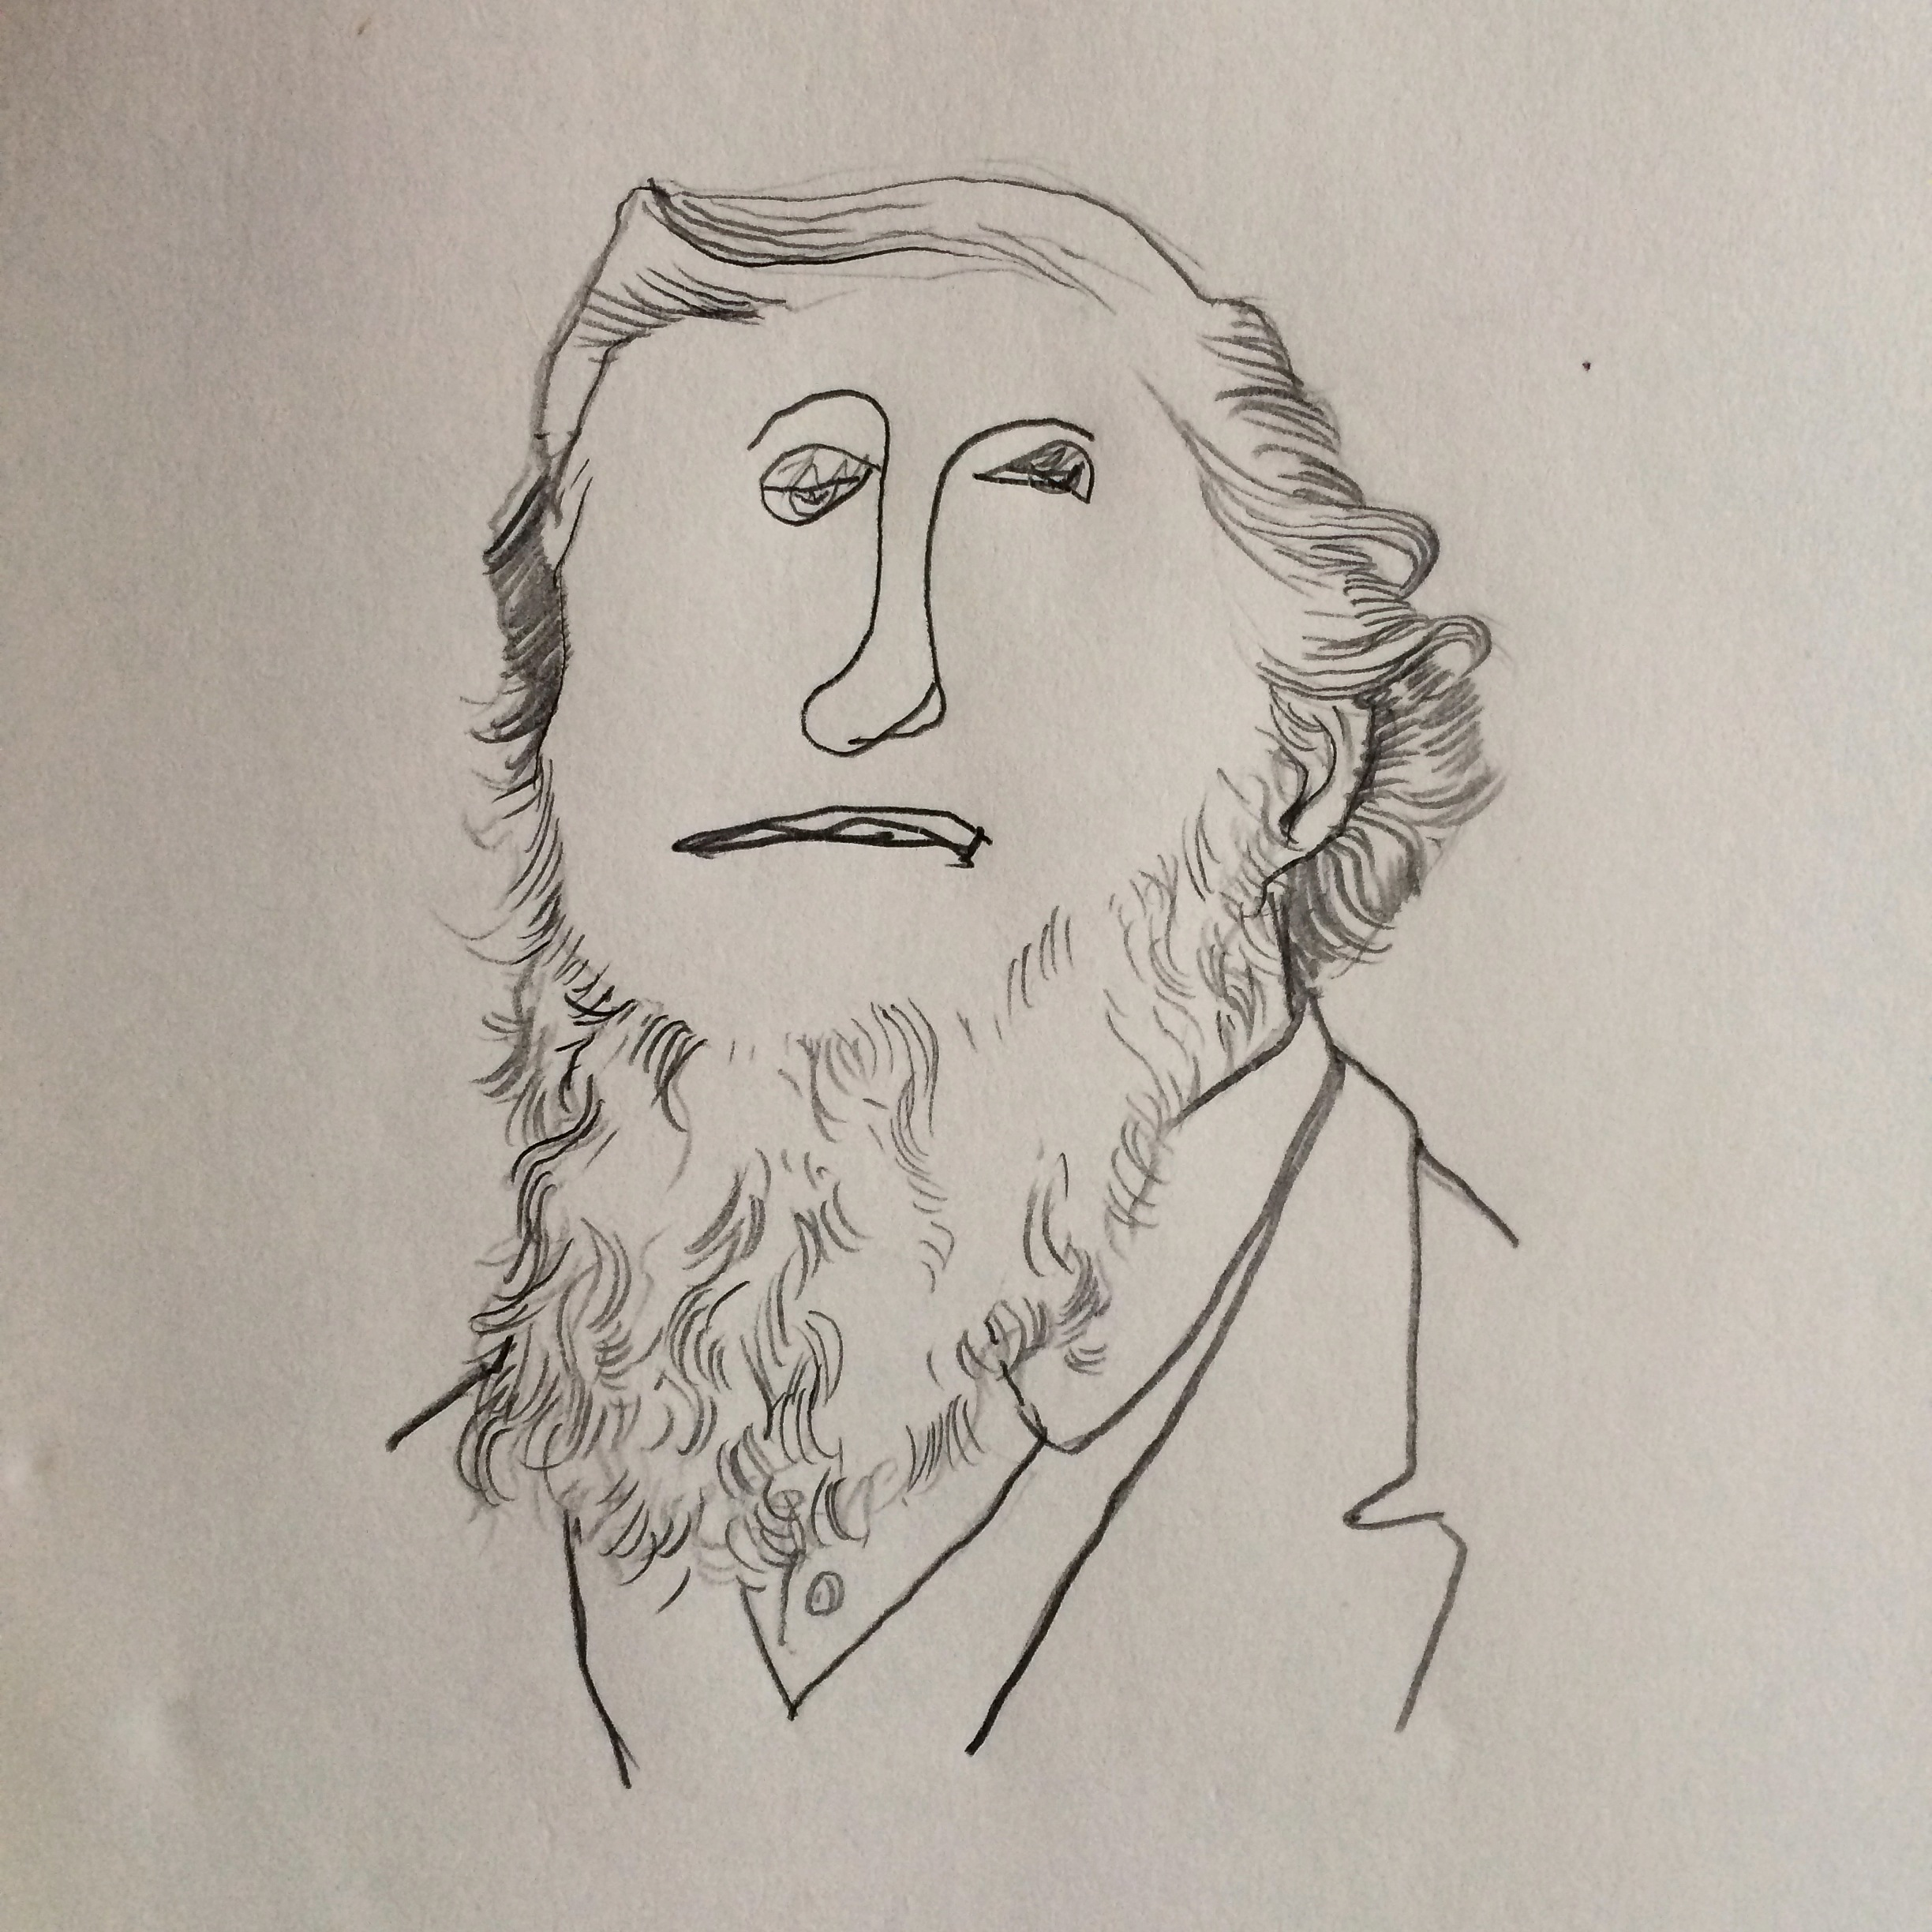 Brigham Young (who can pass up that beard?)